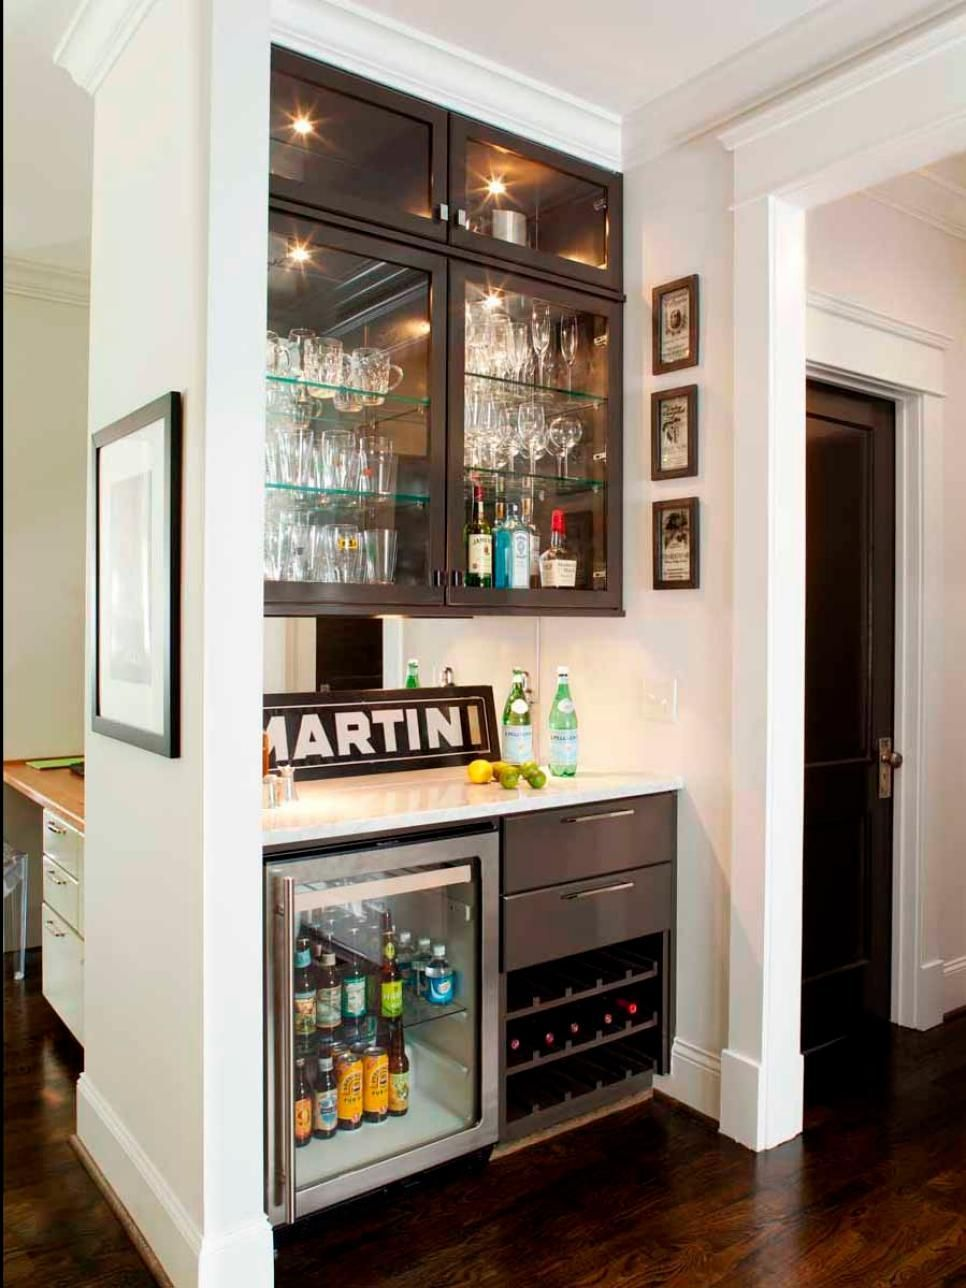 15 Stylish Small Home Bar Ideas | Home Remodeling - Ideas for ...